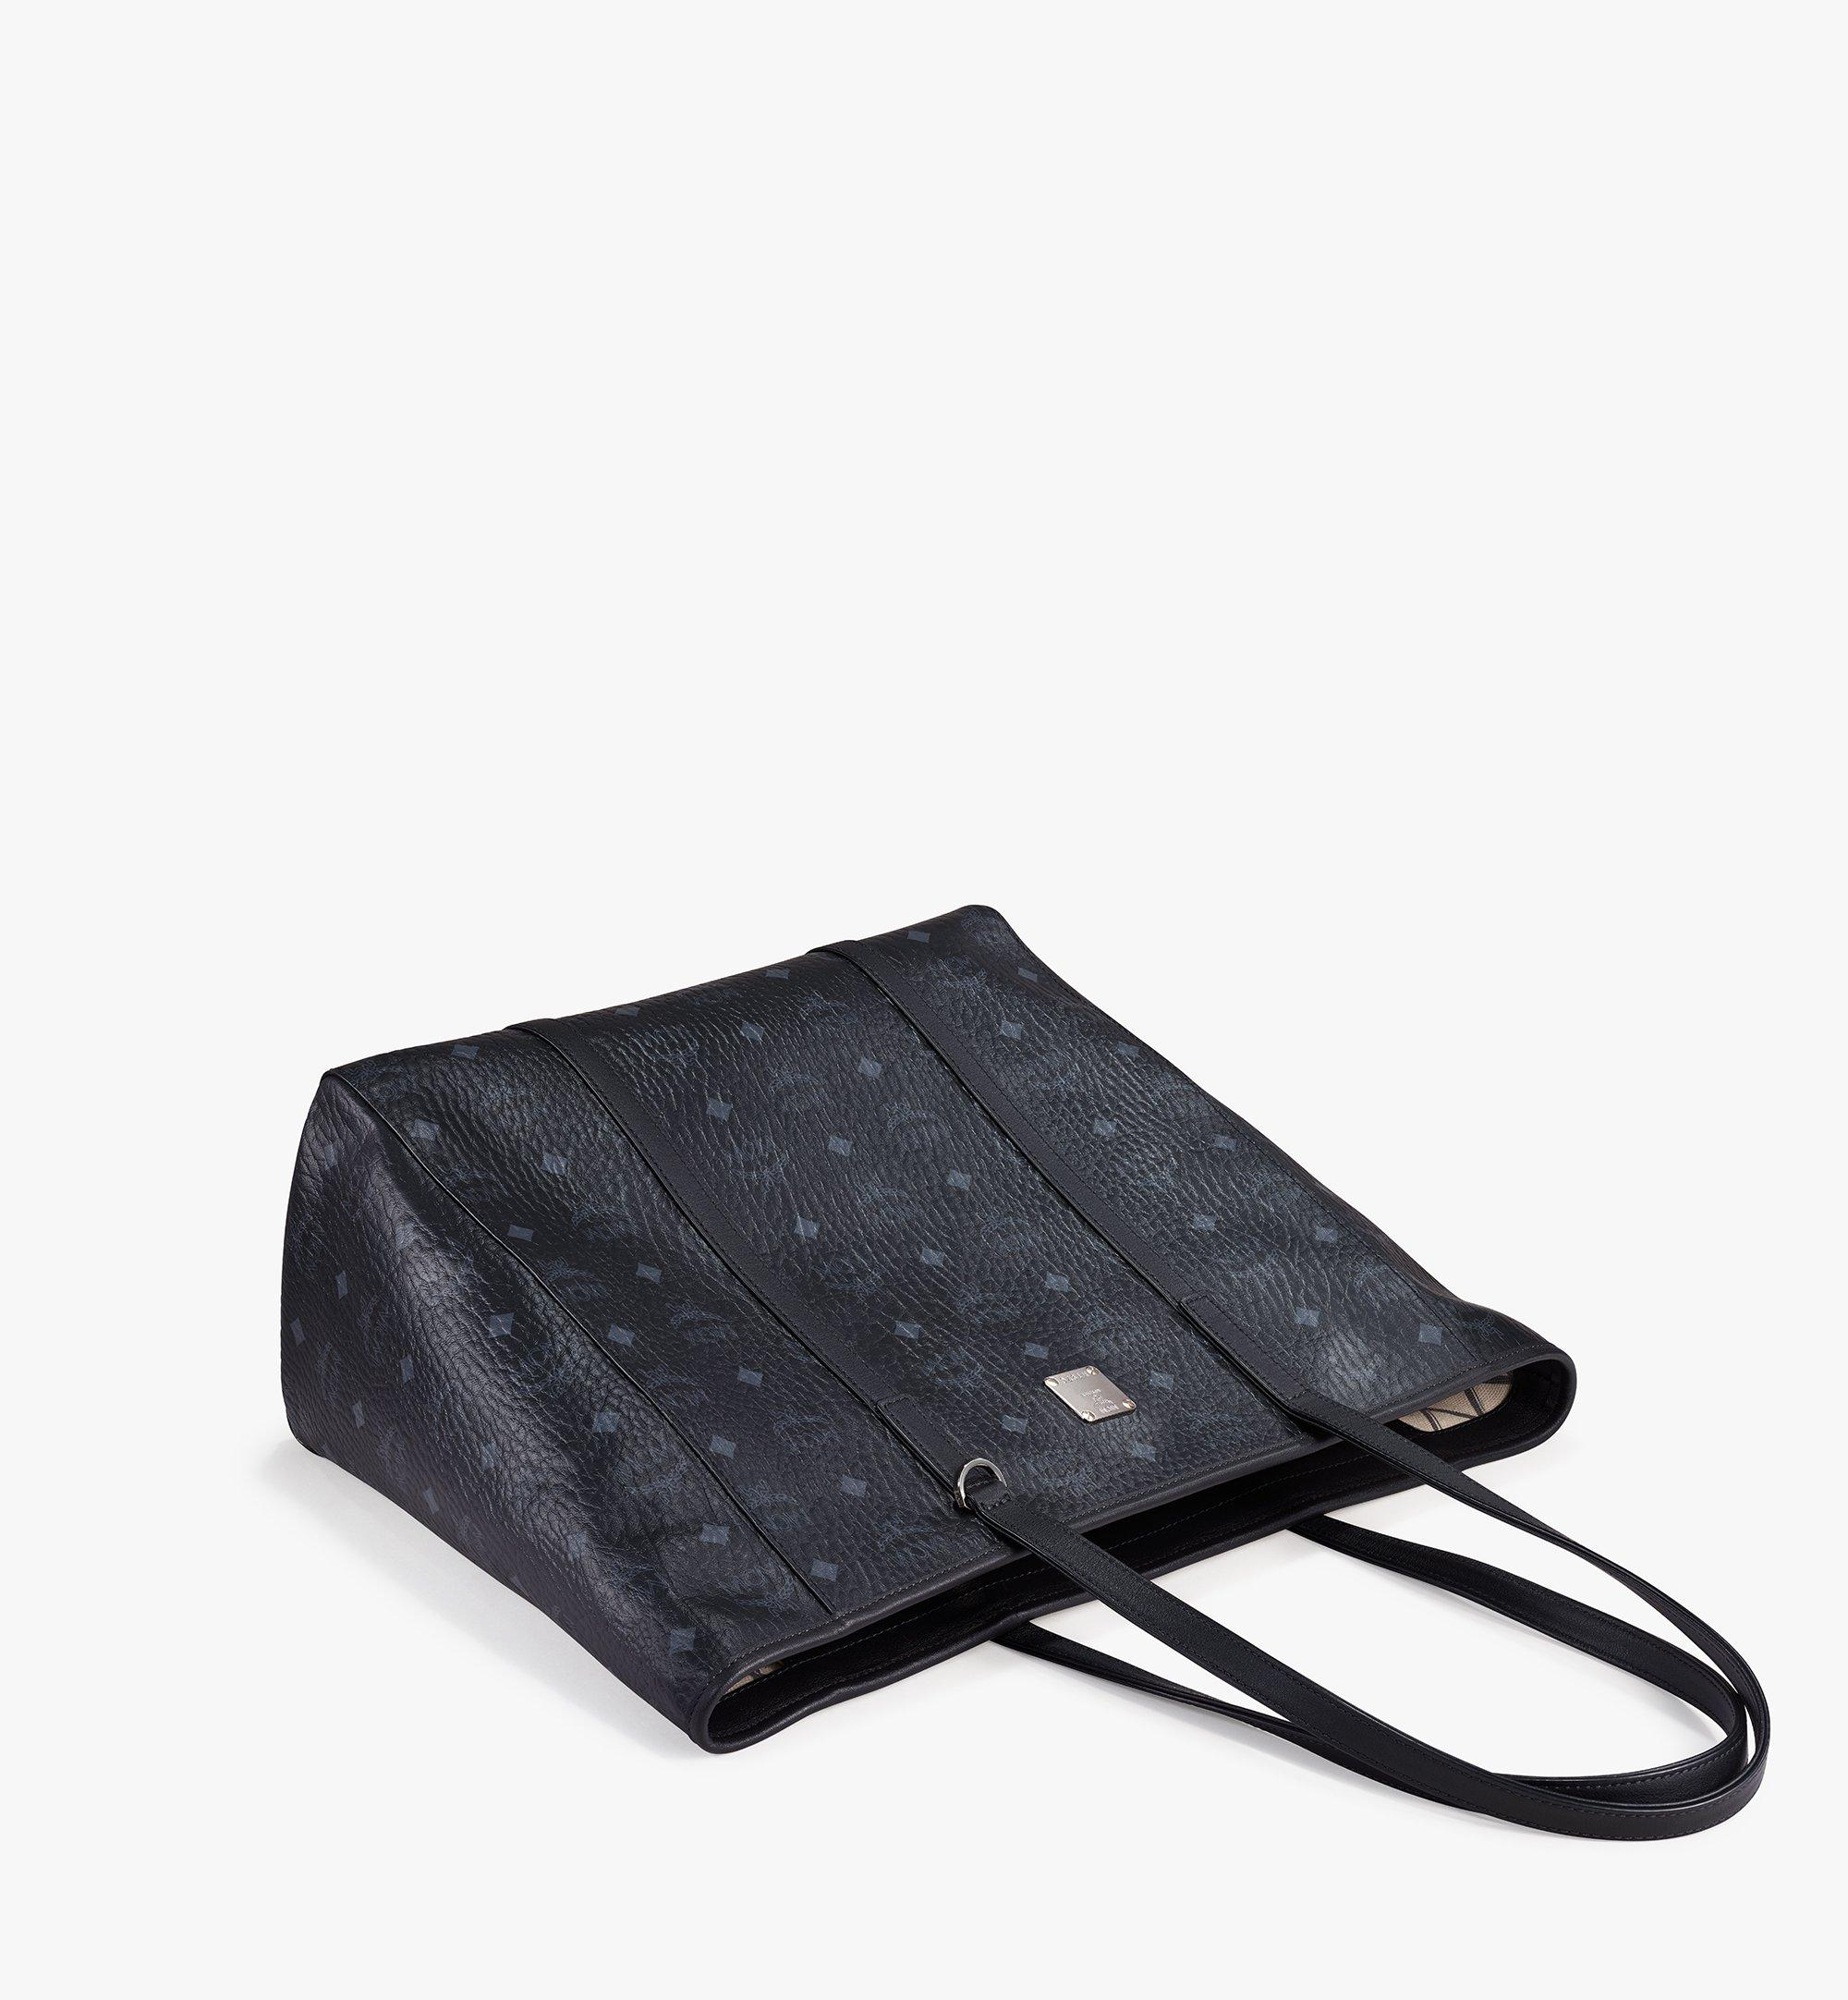 MCM Toni Shopper in Visetos Black MWPAATN03BK001 Alternate View 3